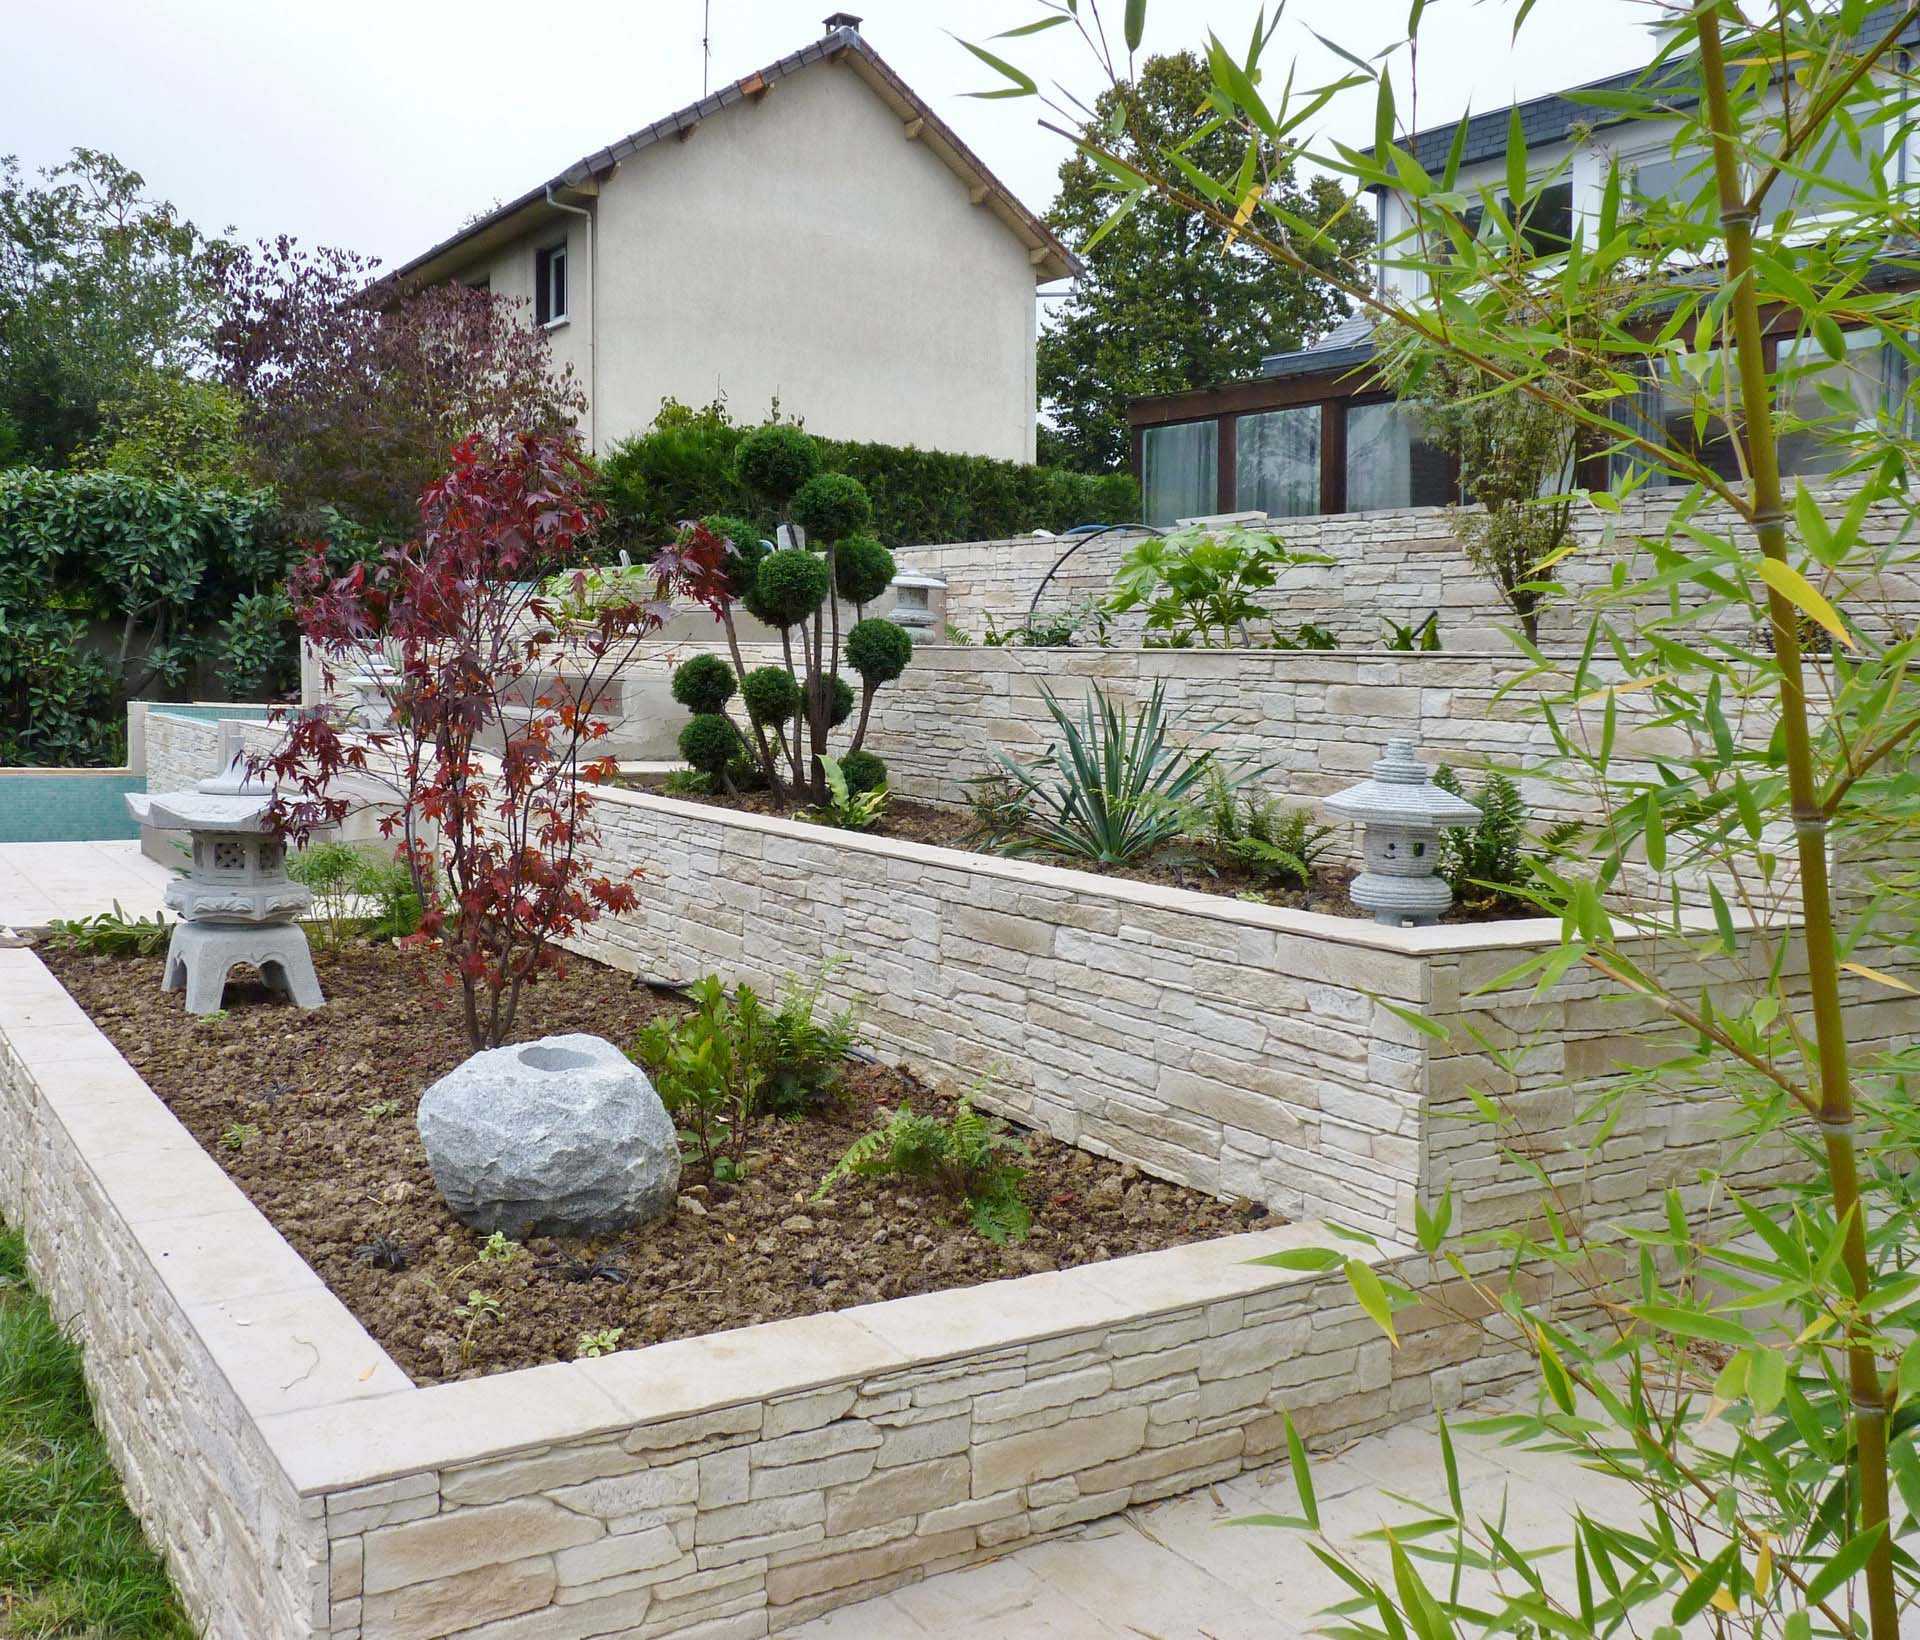 R novation zen maison typique ann es 70 agence architecte - Amenagement terrasse et jardin photo ...